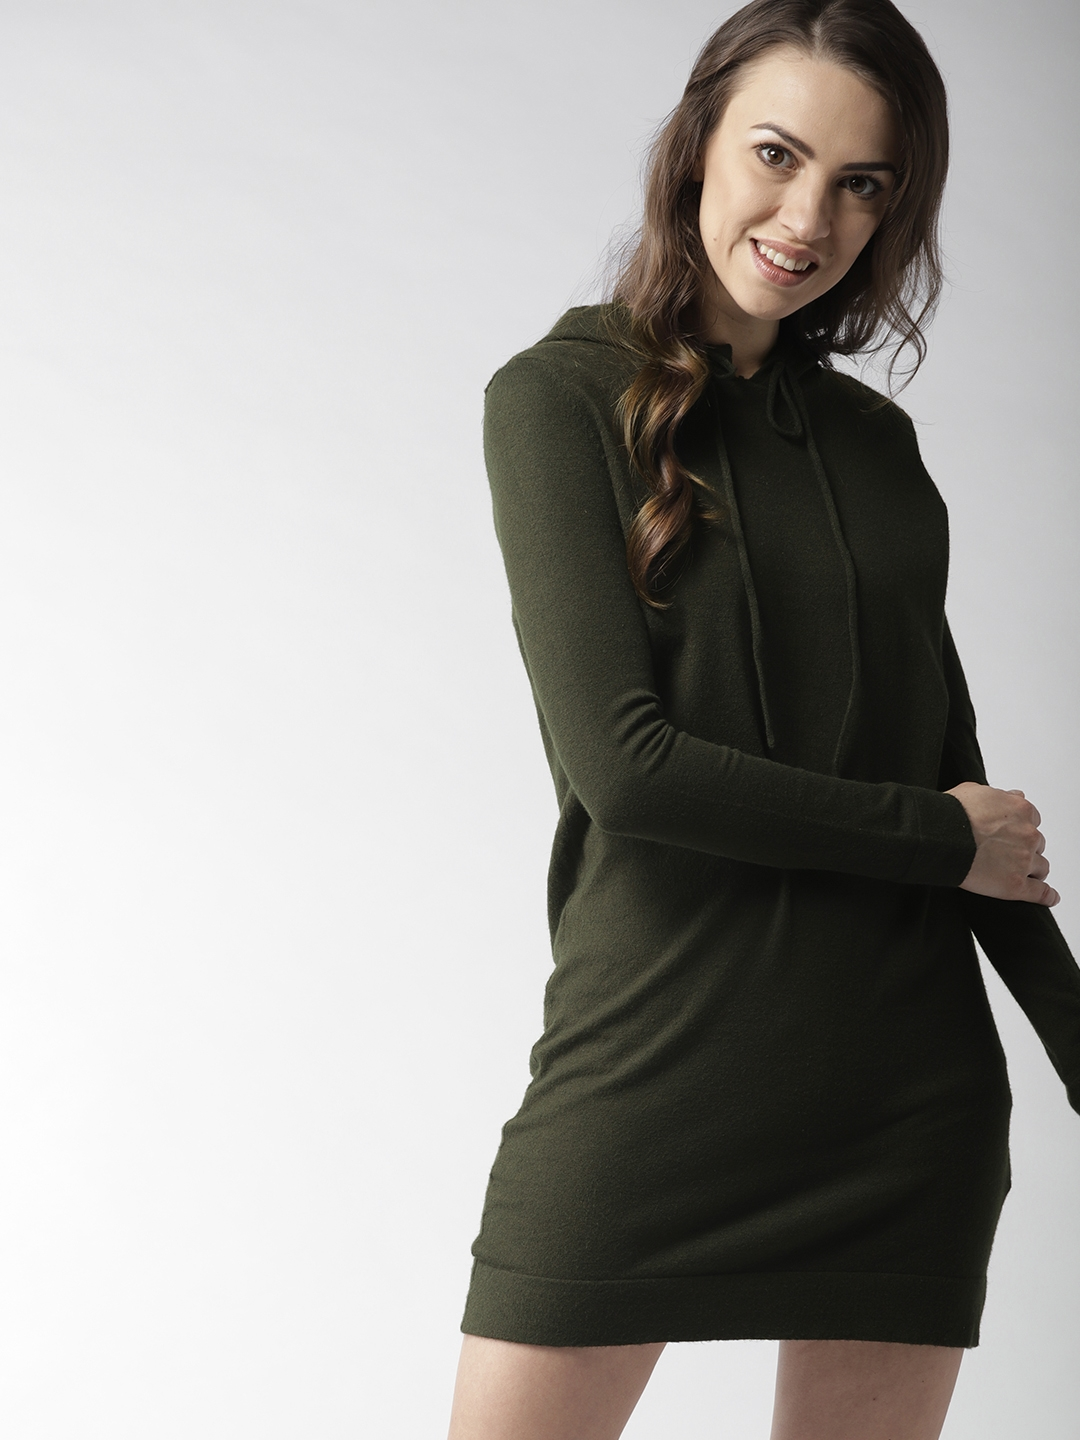 357c2796cf Buy FOREVER 21 Women Olive Green Solid Sweater Dress - Dresses for ...